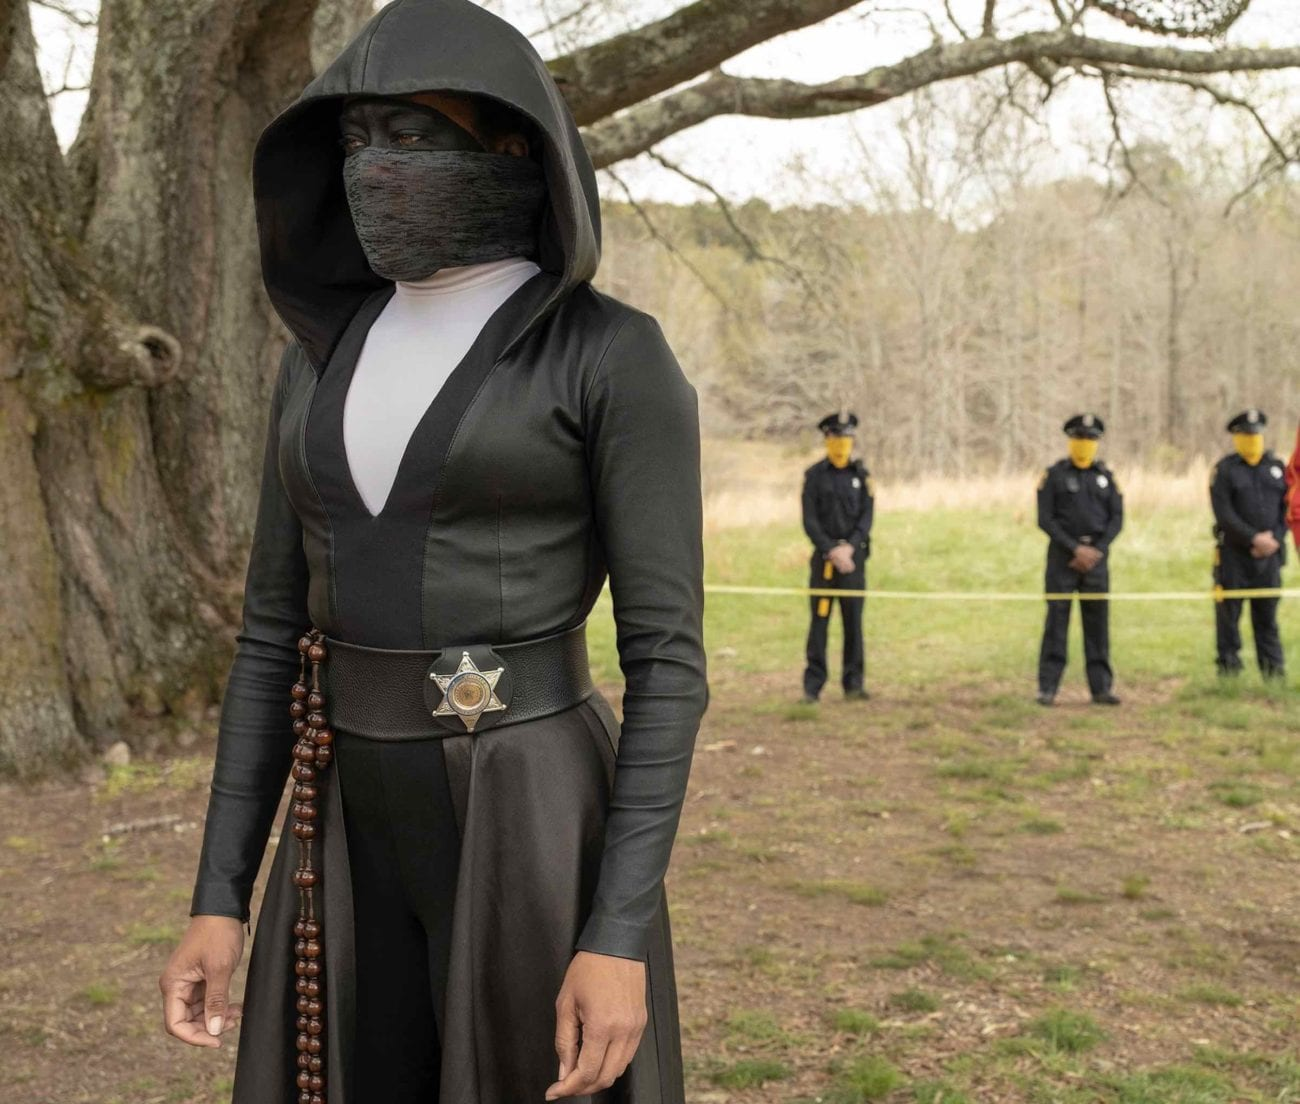 We've compiled what we know about a potential 'Watchmen' season 2 in order for everyone to gain some much-deserved clarity.